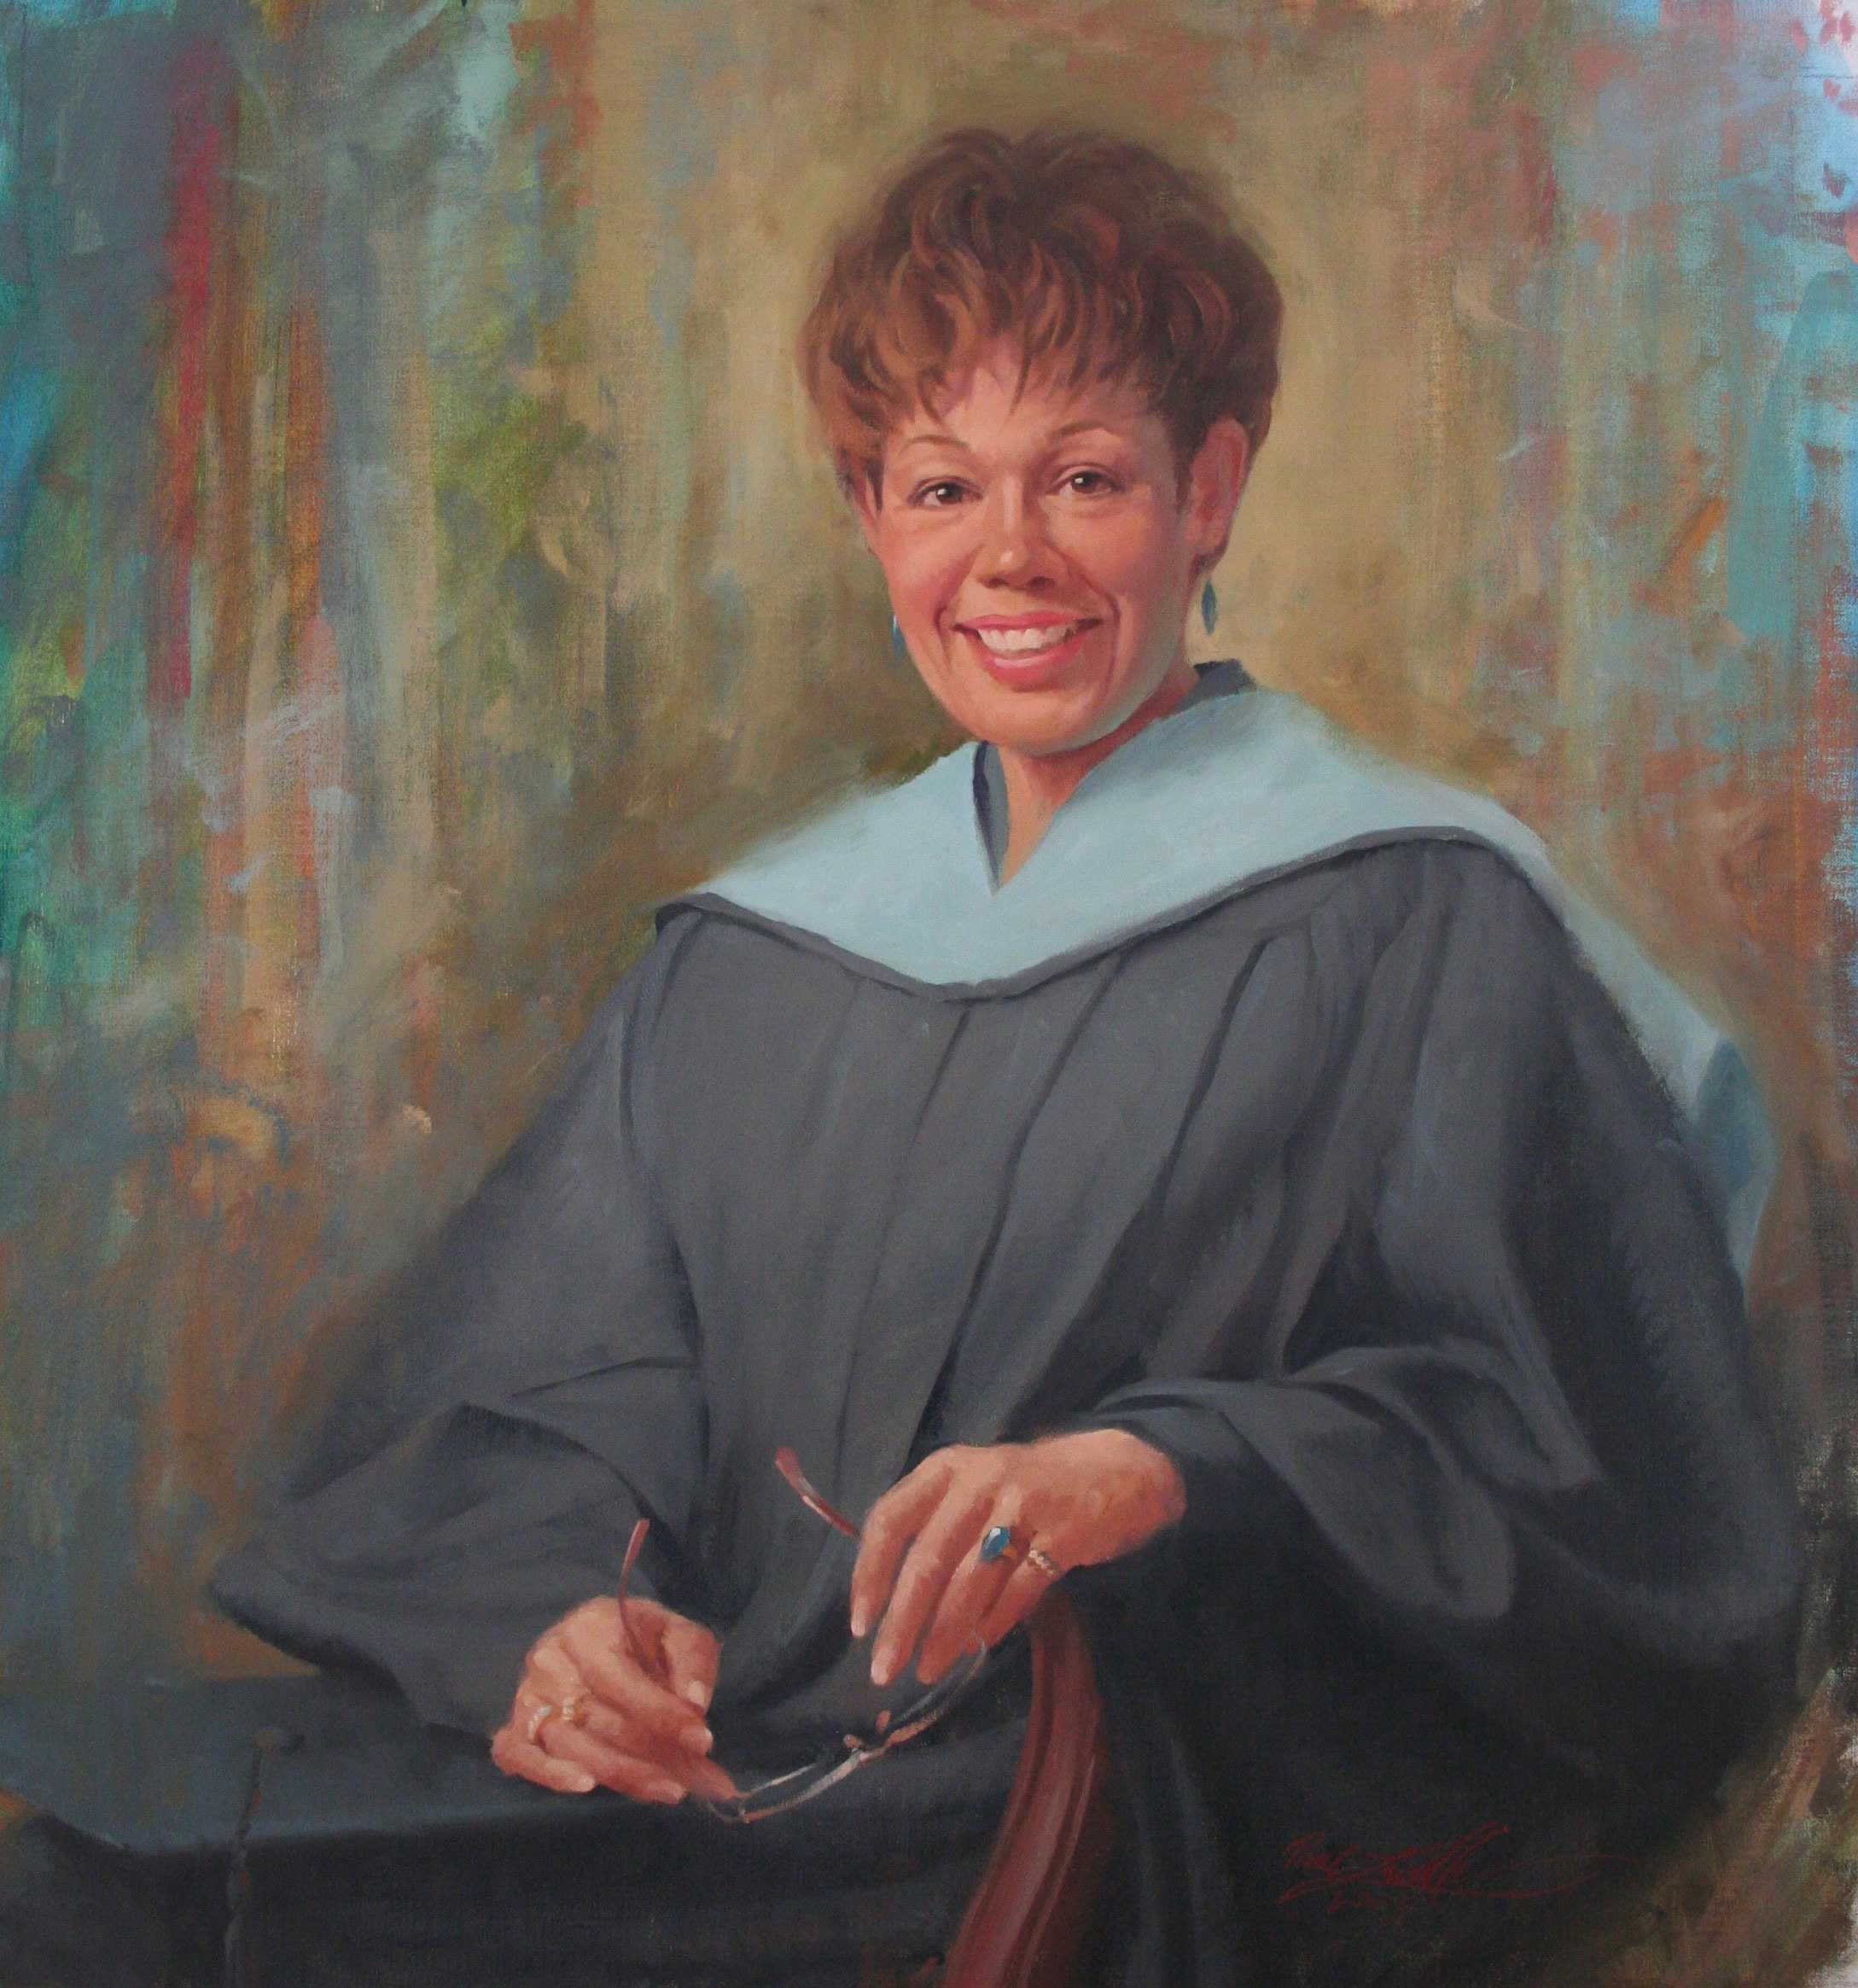 Teresa burr  dean of liberal arts transfer and general studies at sprinfield technical community college  springfield  massachusetts  oil on canvas  29 x 31 web